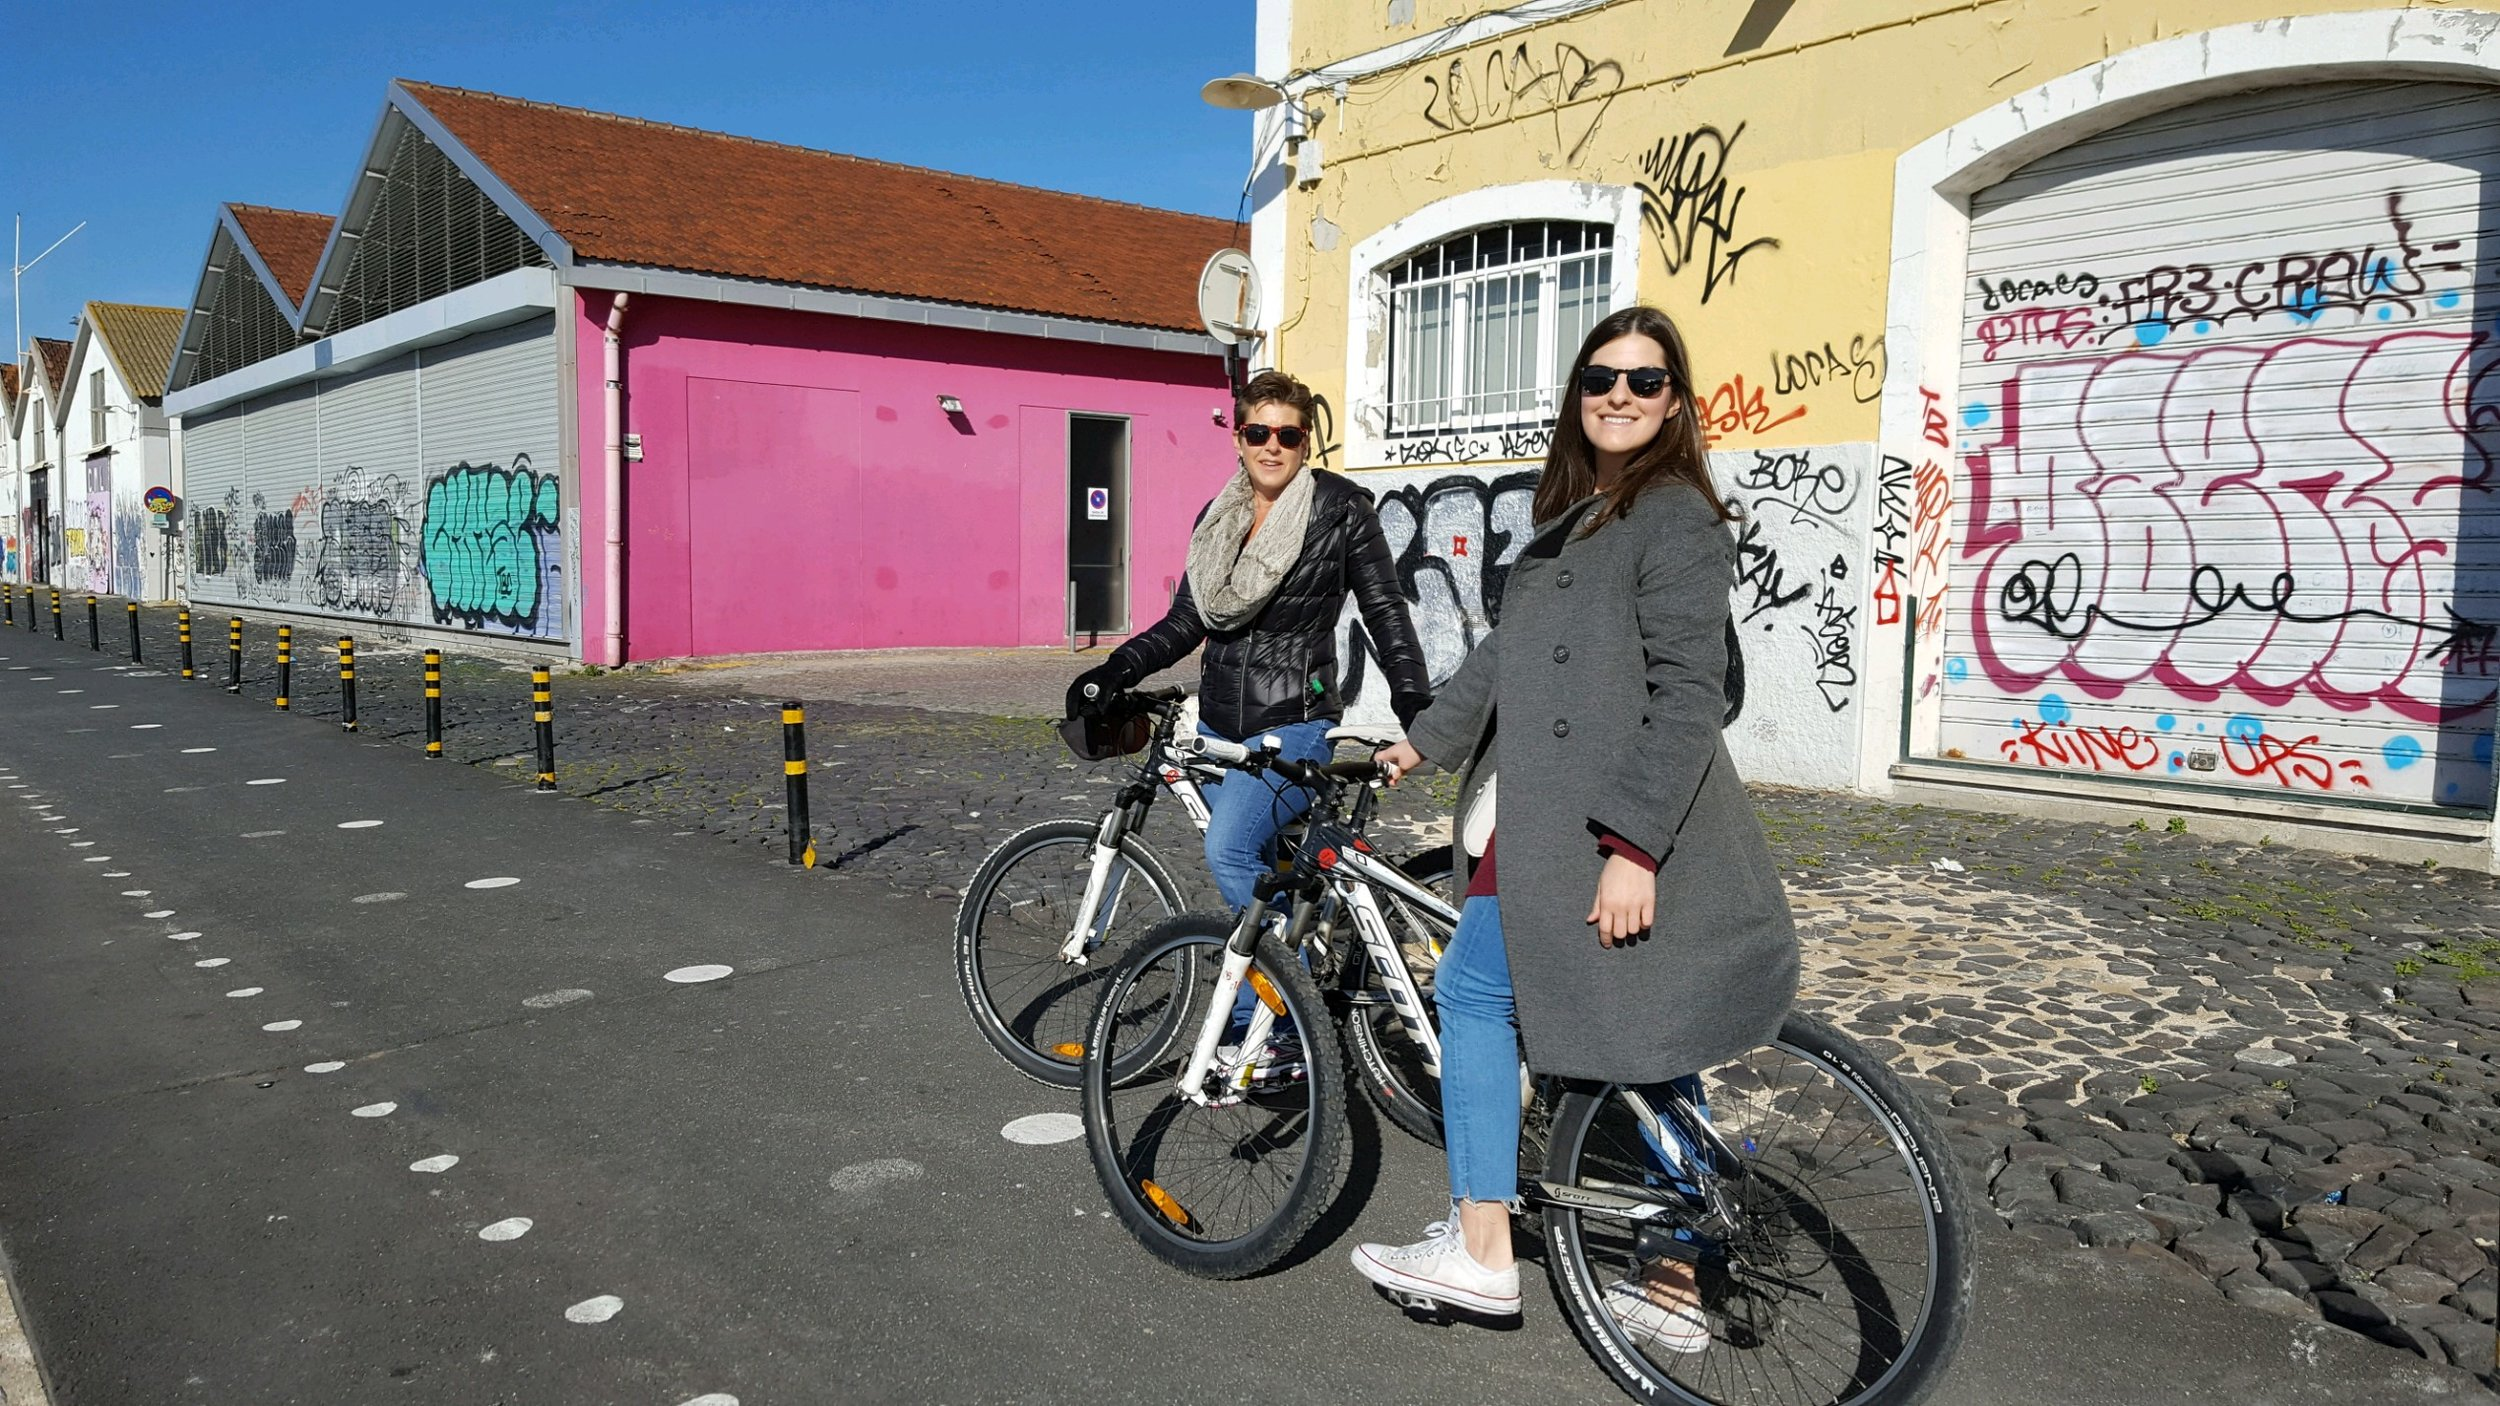 Biking in Lisbon! Definitely didnt need this heavy or long of a jacket.